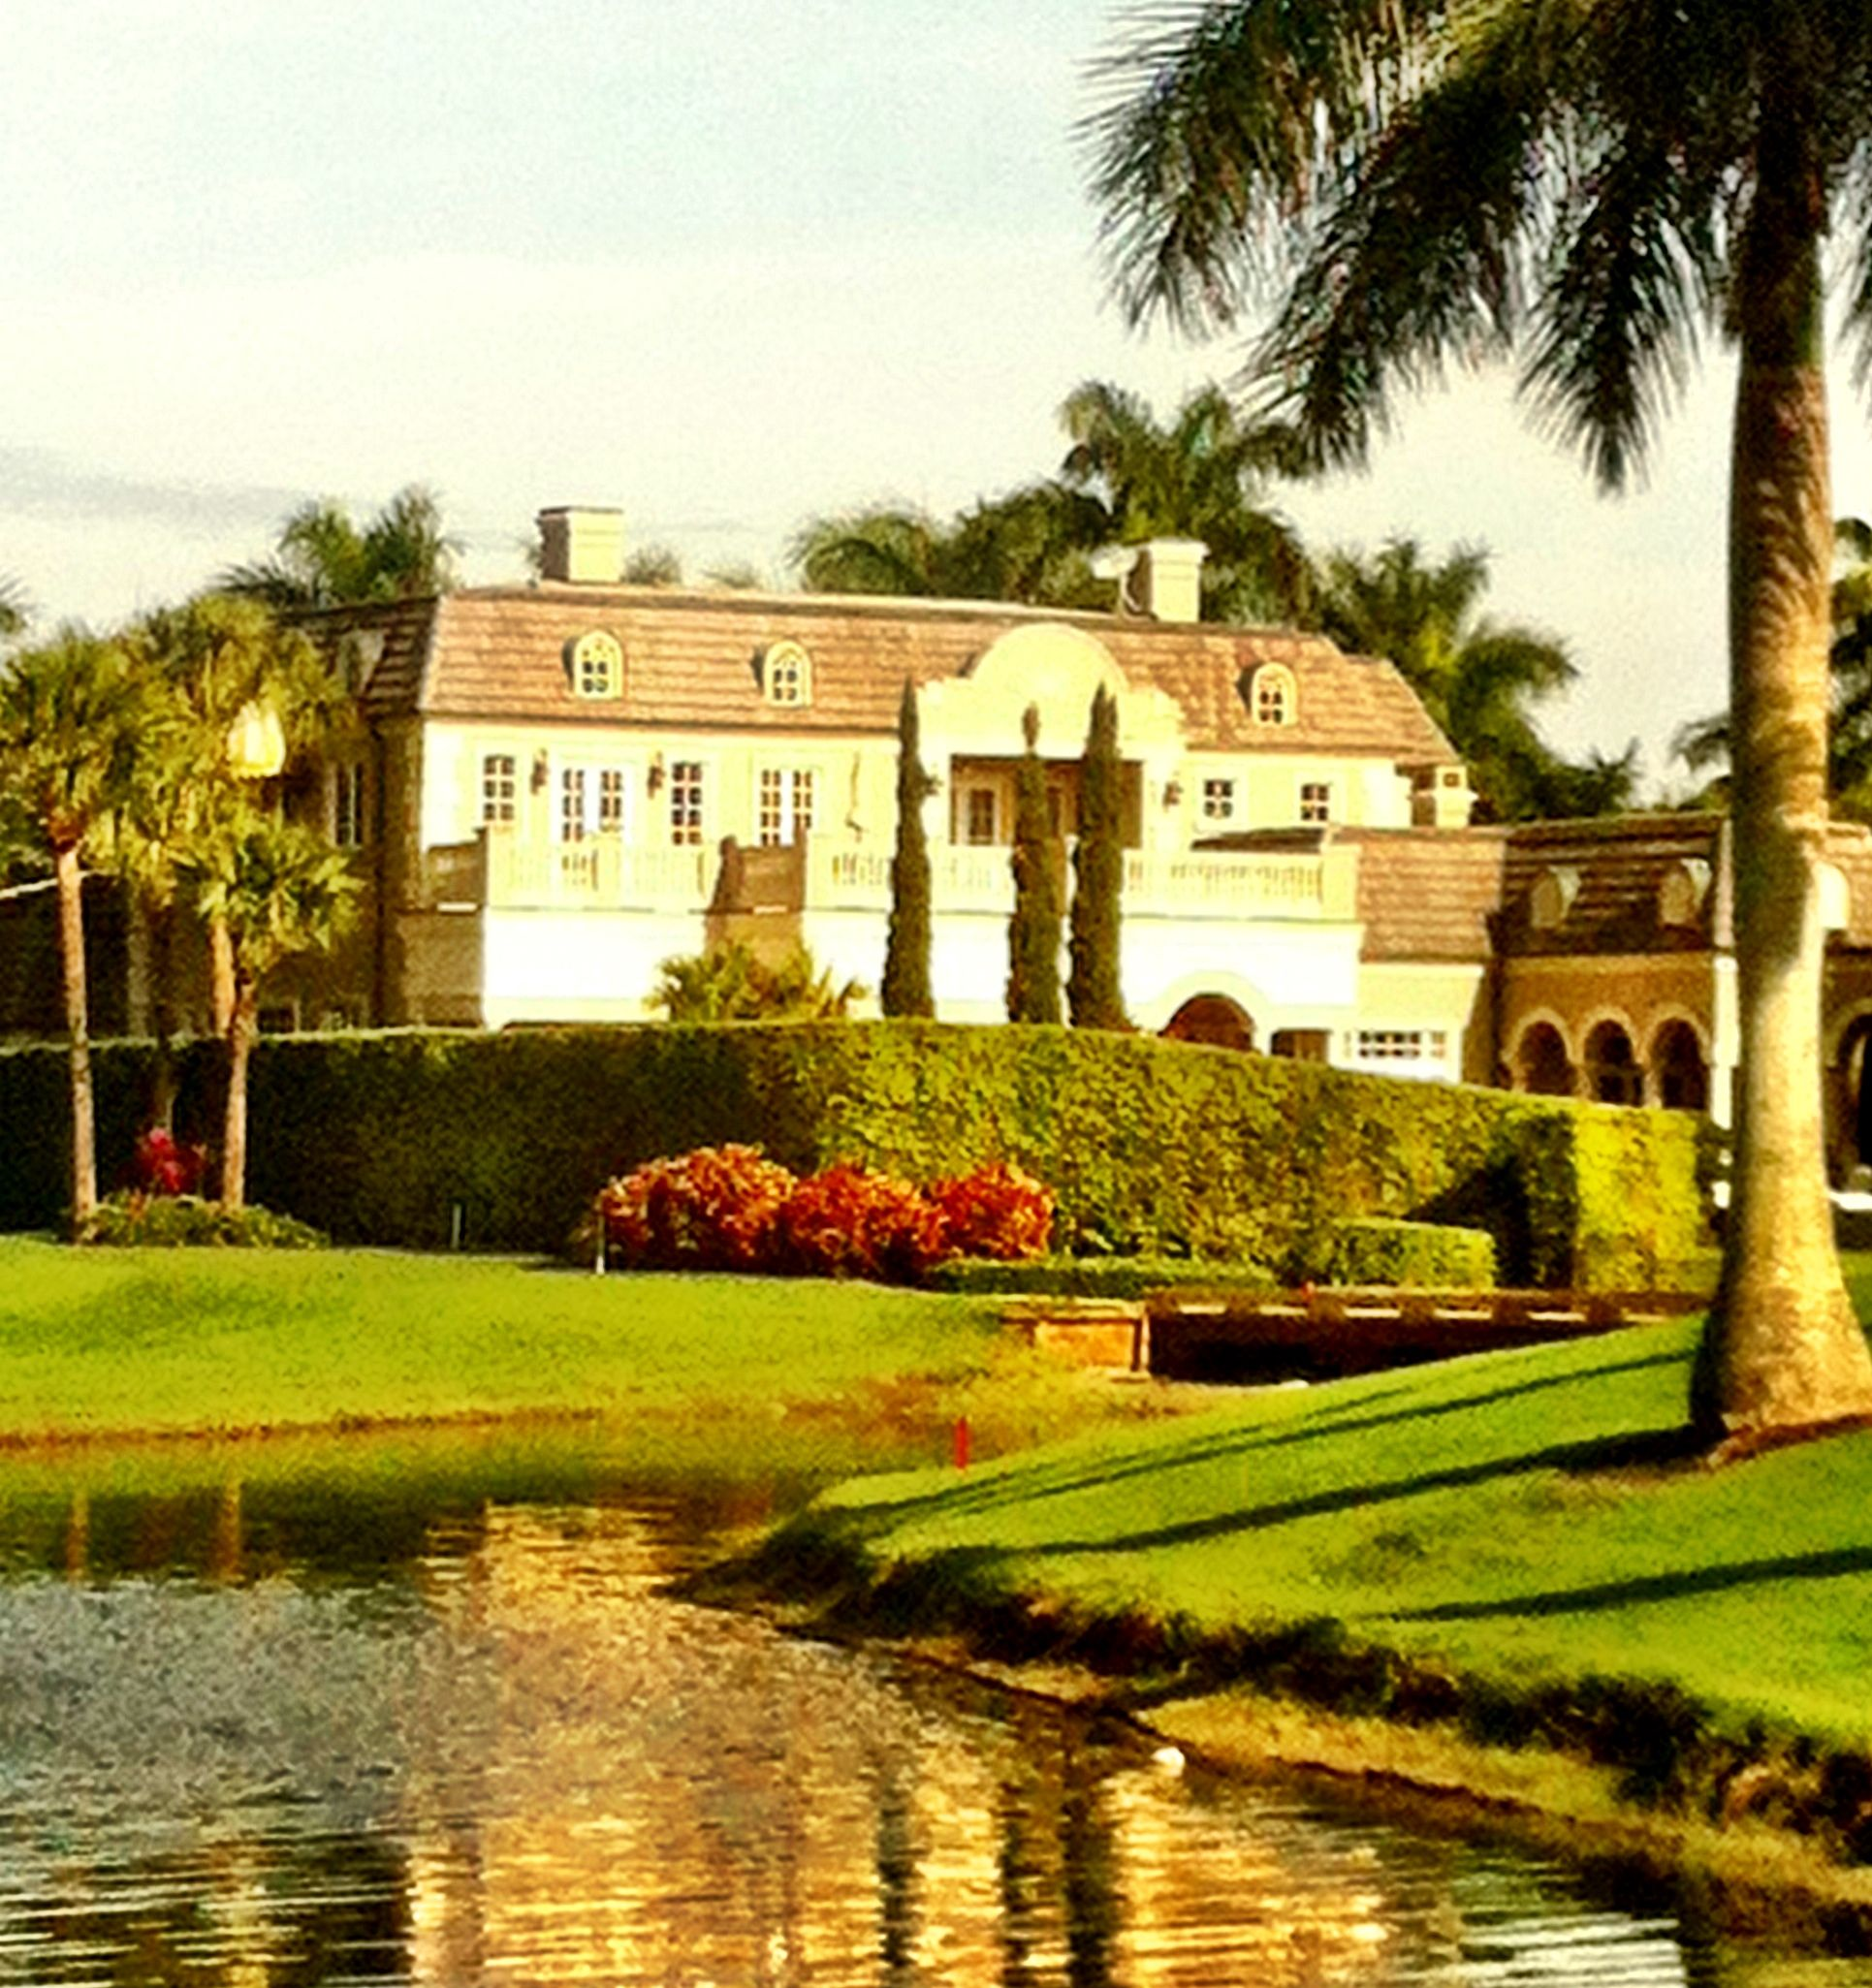 Day 22 - a French chateau in Florida.